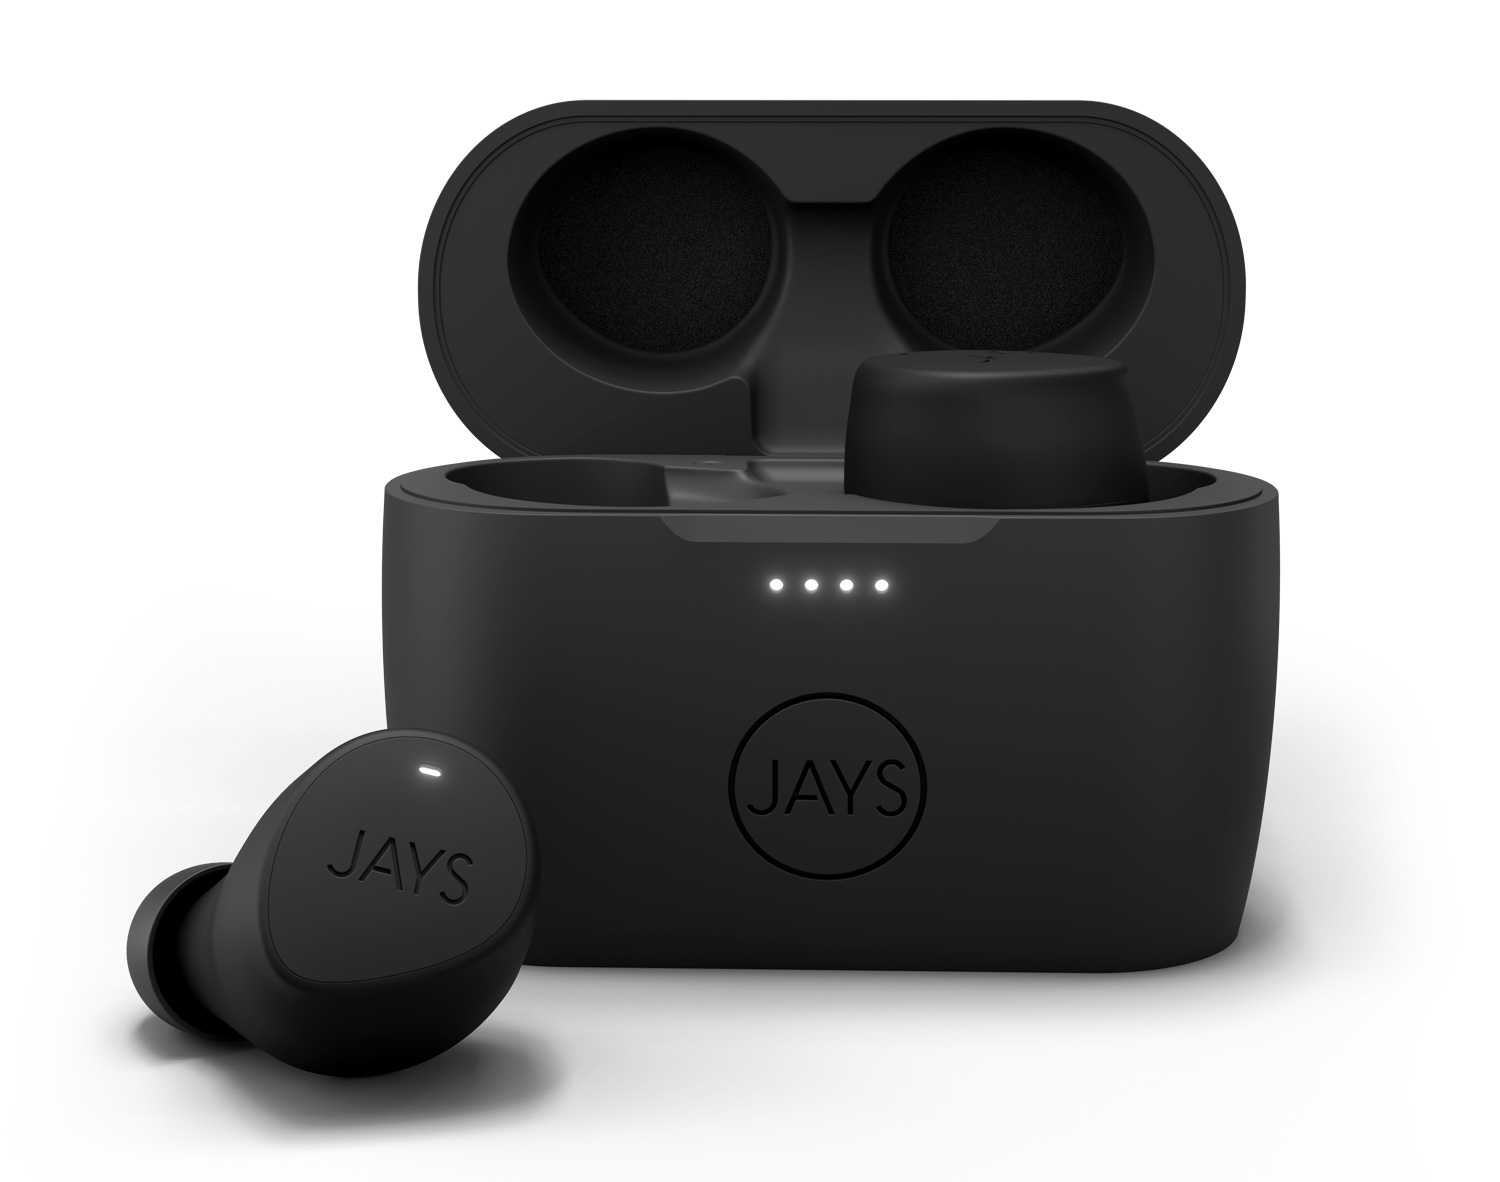 Jays m-Seven Earbuds are Wireless & Weatherproof at werd.com